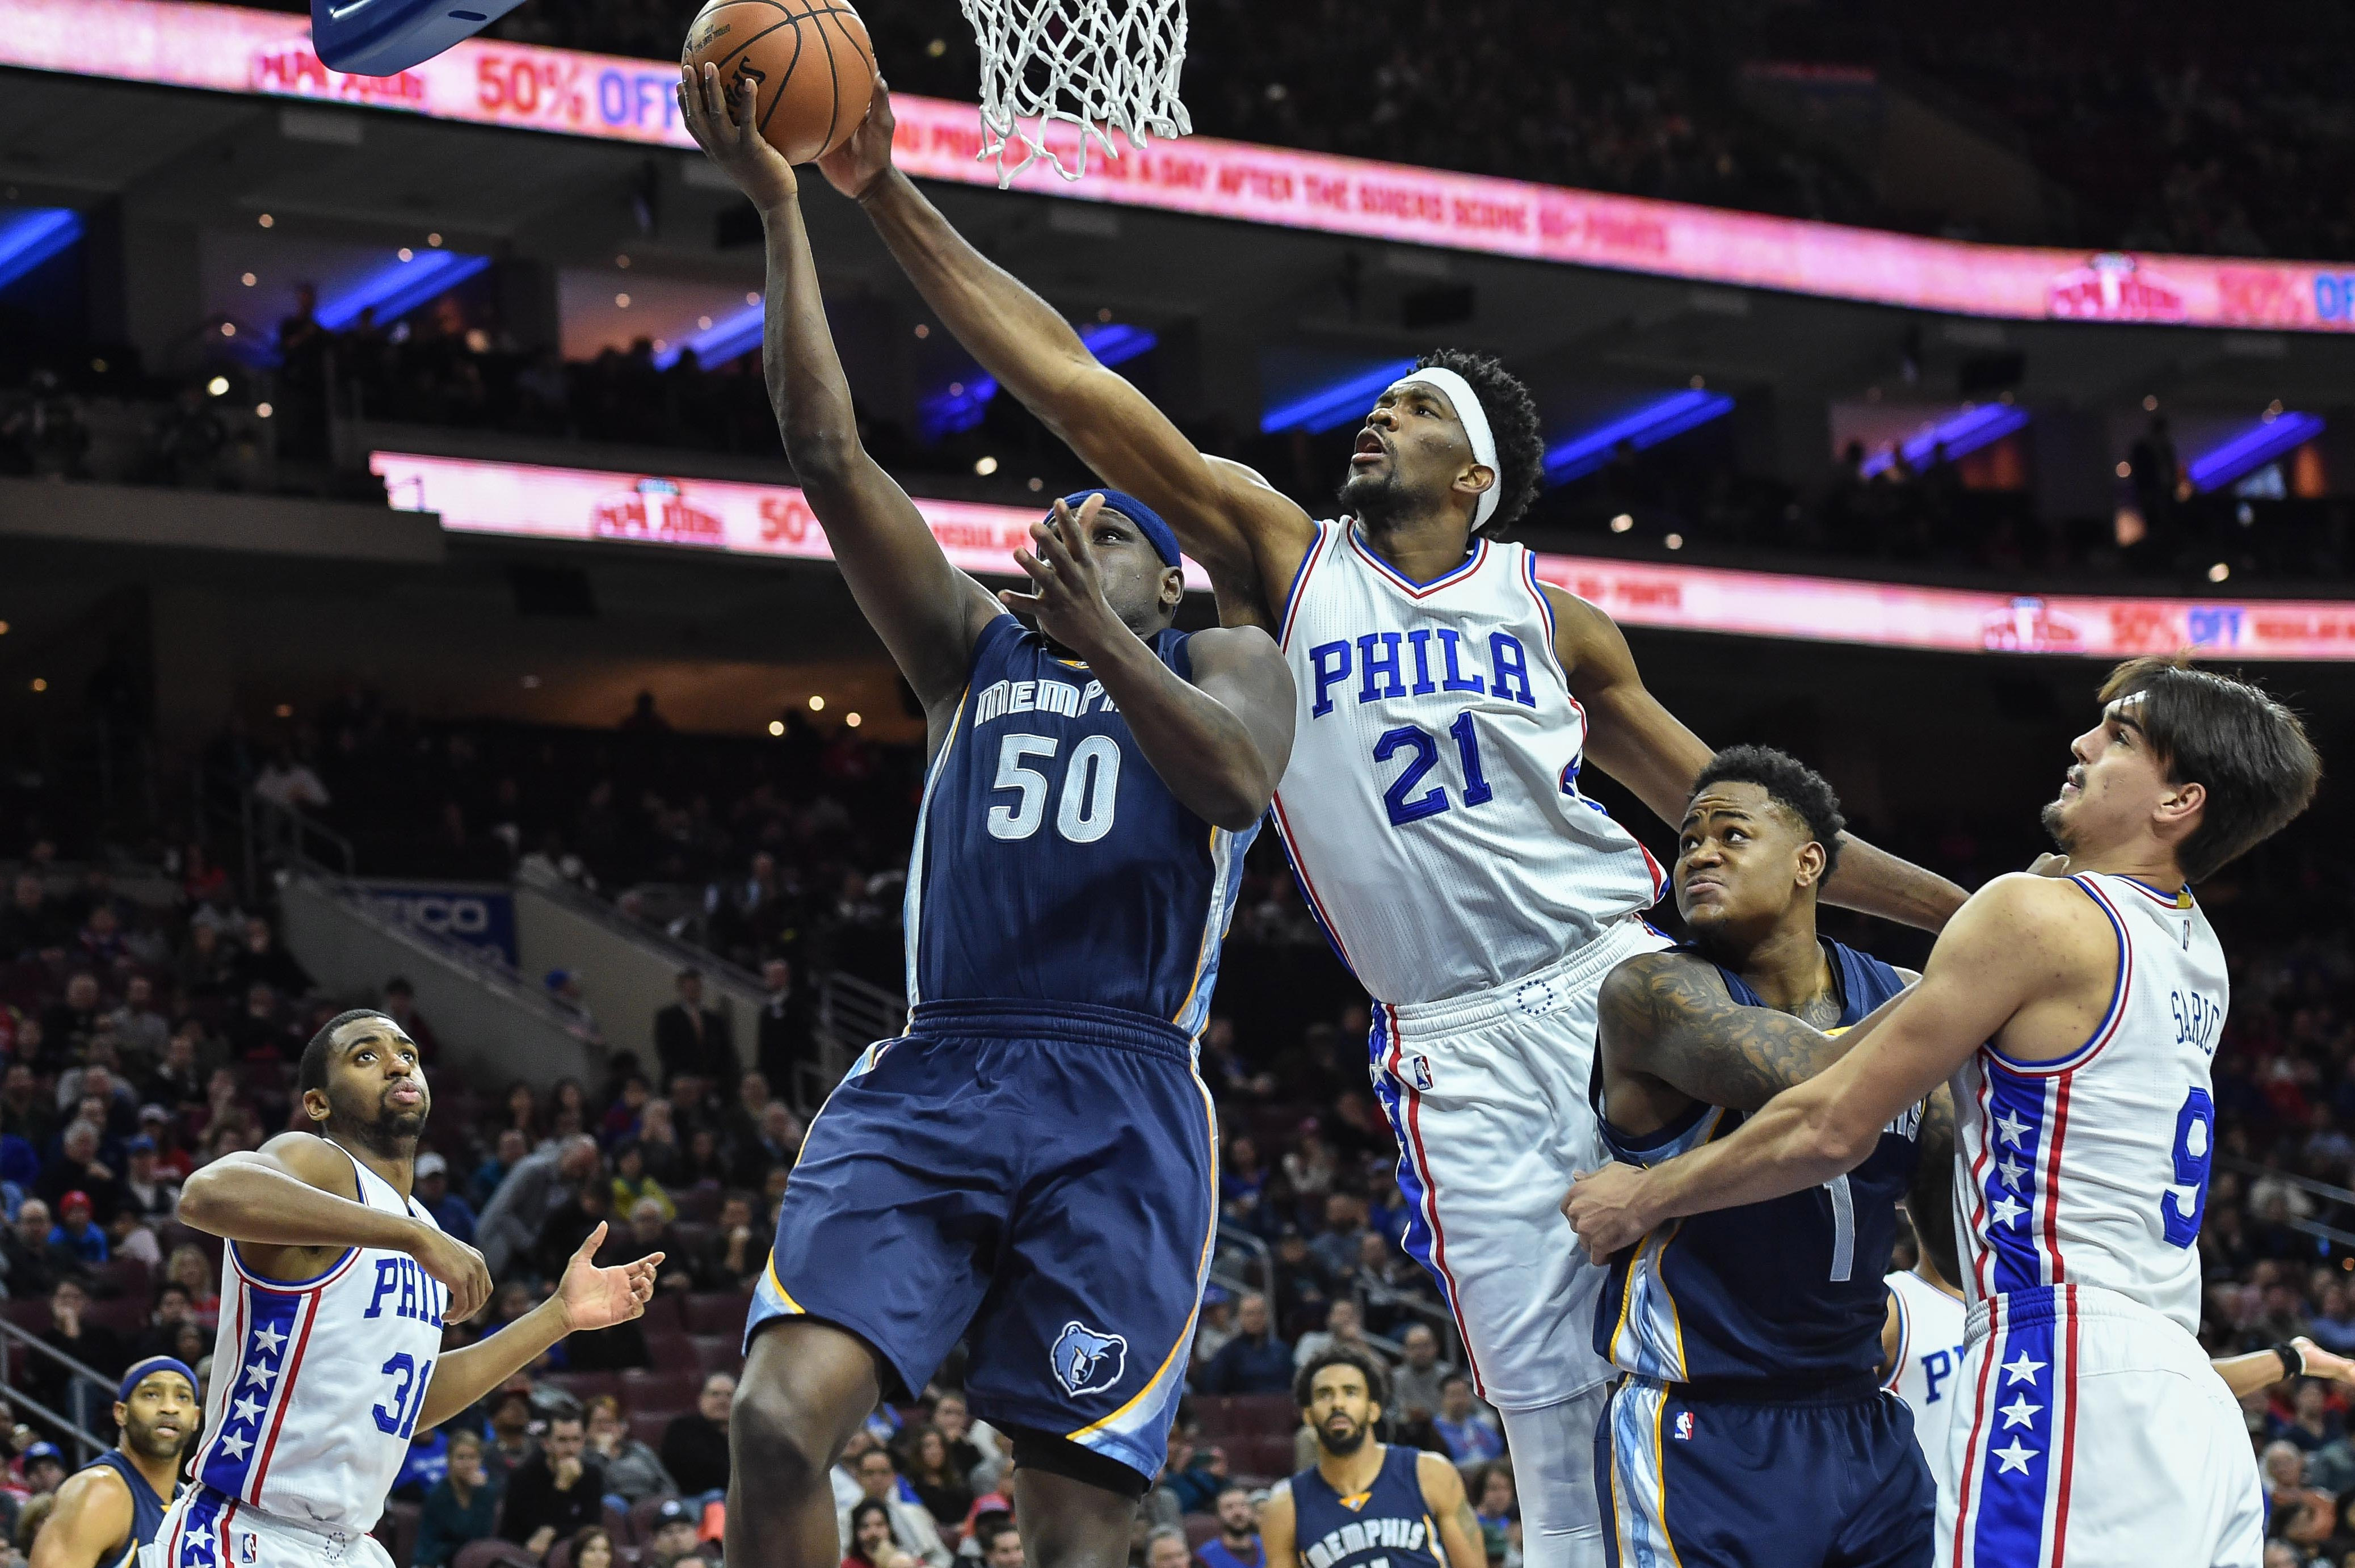 Joel Embiid is providing an immediate impact in FanDuel NBA league play as a rookie.